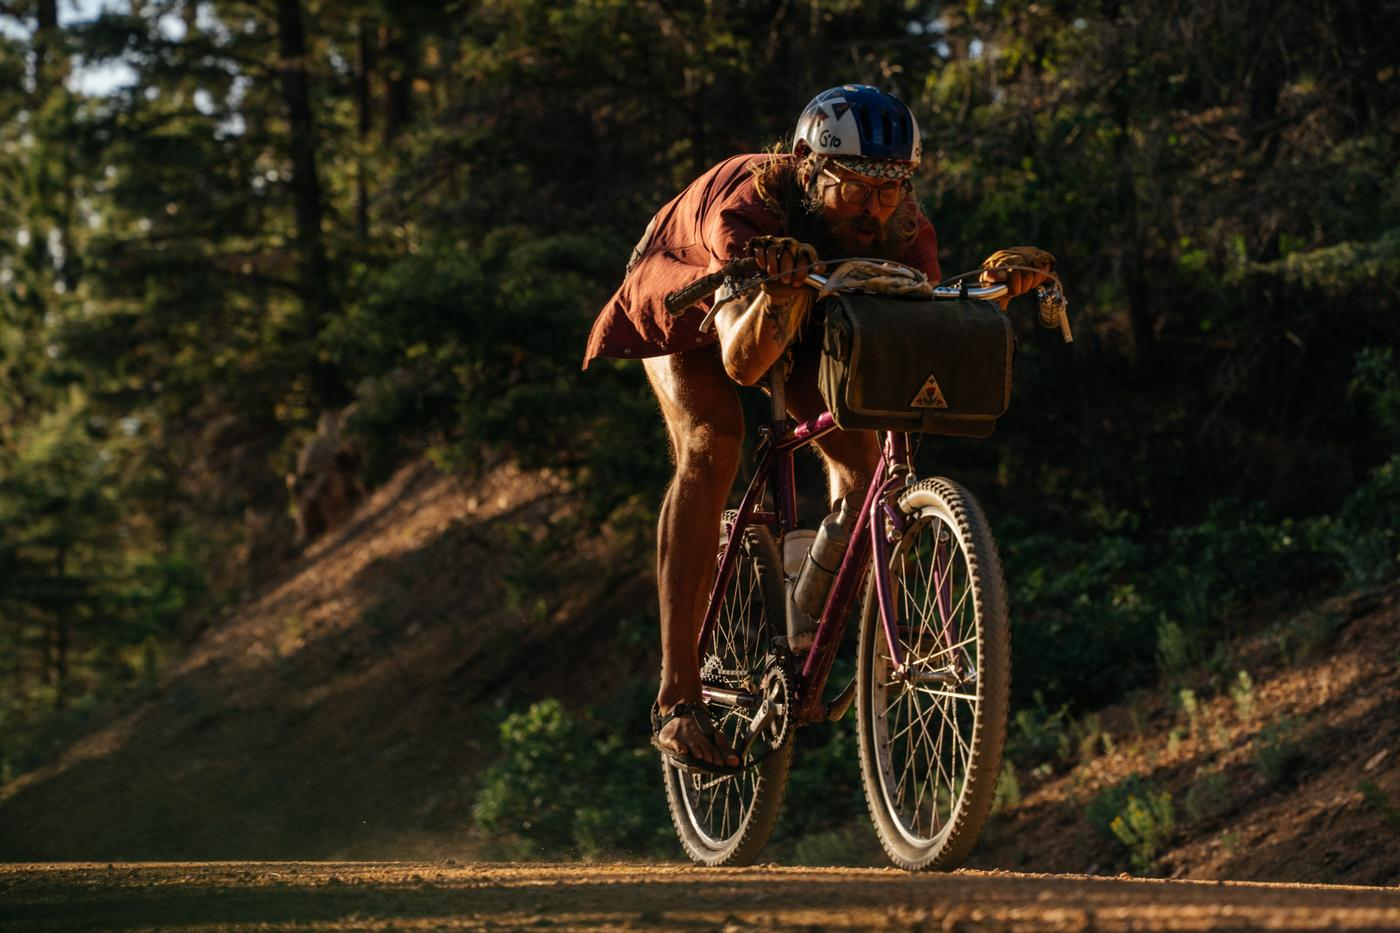 Cry of the Duralcan: Ronnie Romance's DURALCAN S Works Stumpjumper M2